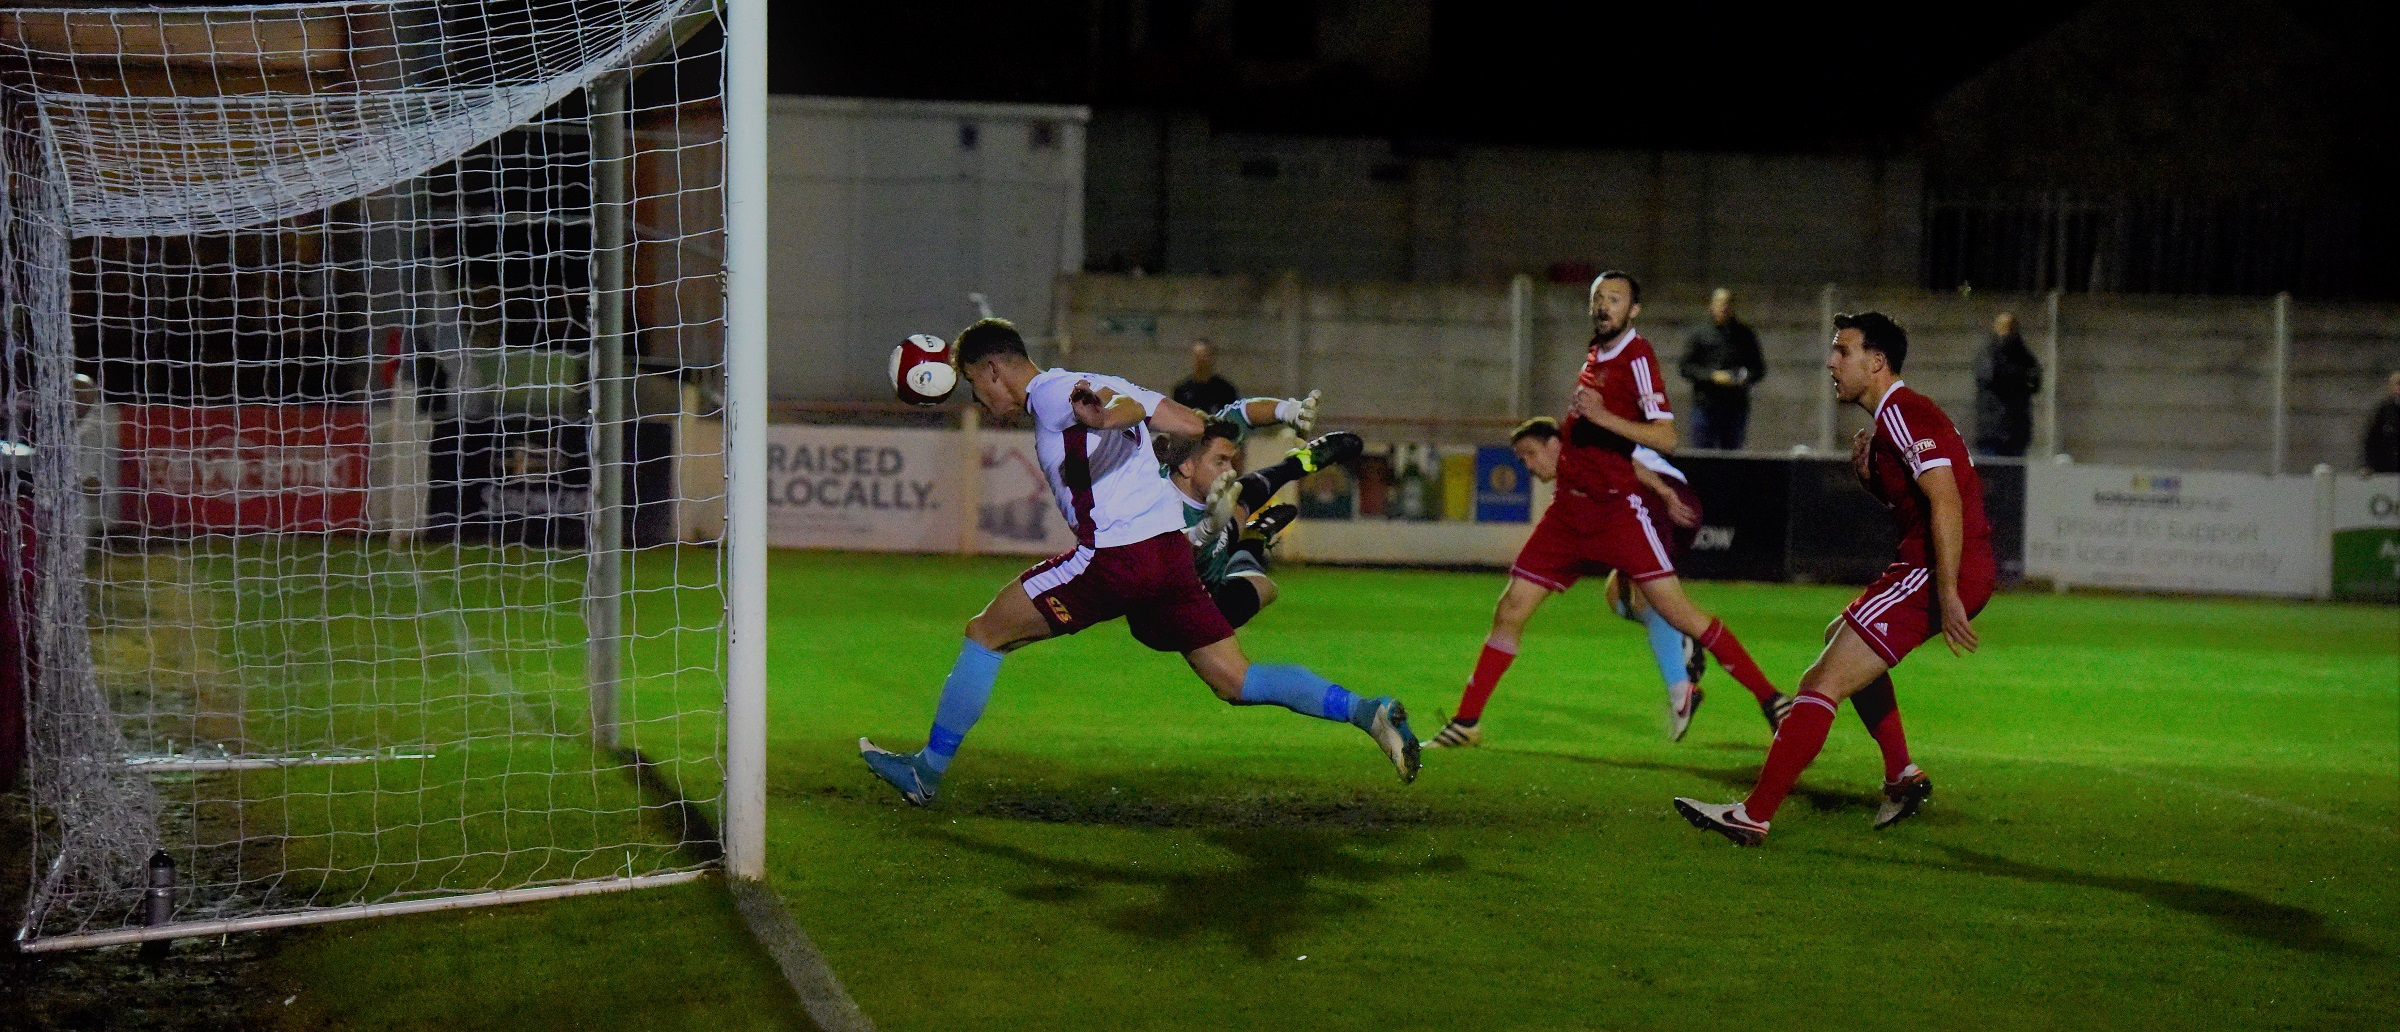 Ossett Town 0-2 South Shields: Mariners stay on top